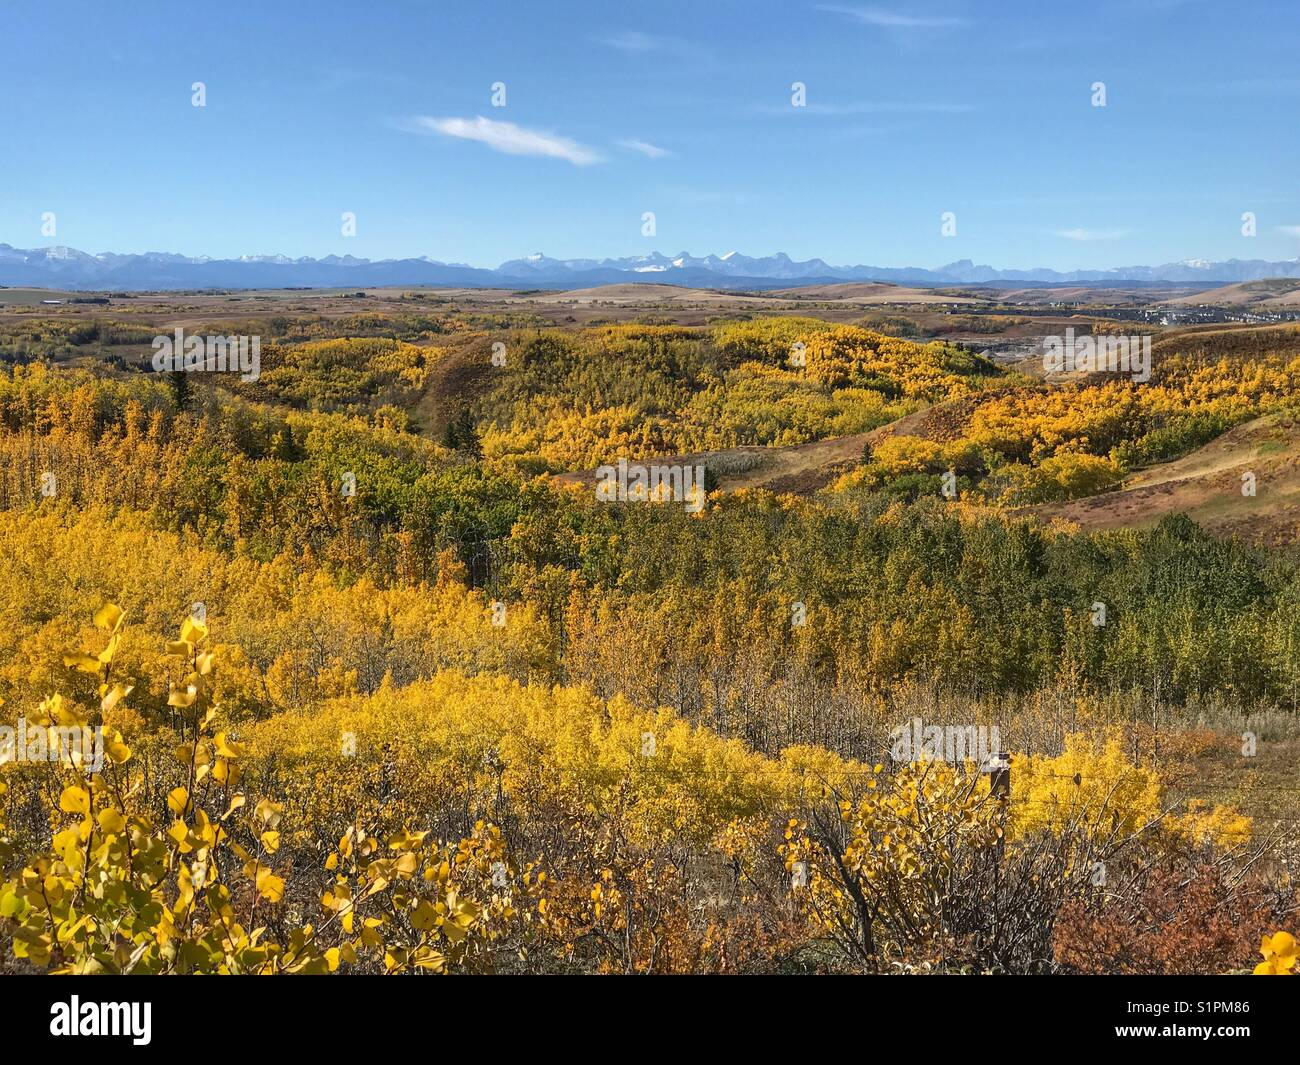 Fall colours across the Alberta foothills, looking towards the Rocky mountains. Taken at Glenbow Ranch provincial - Stock Image